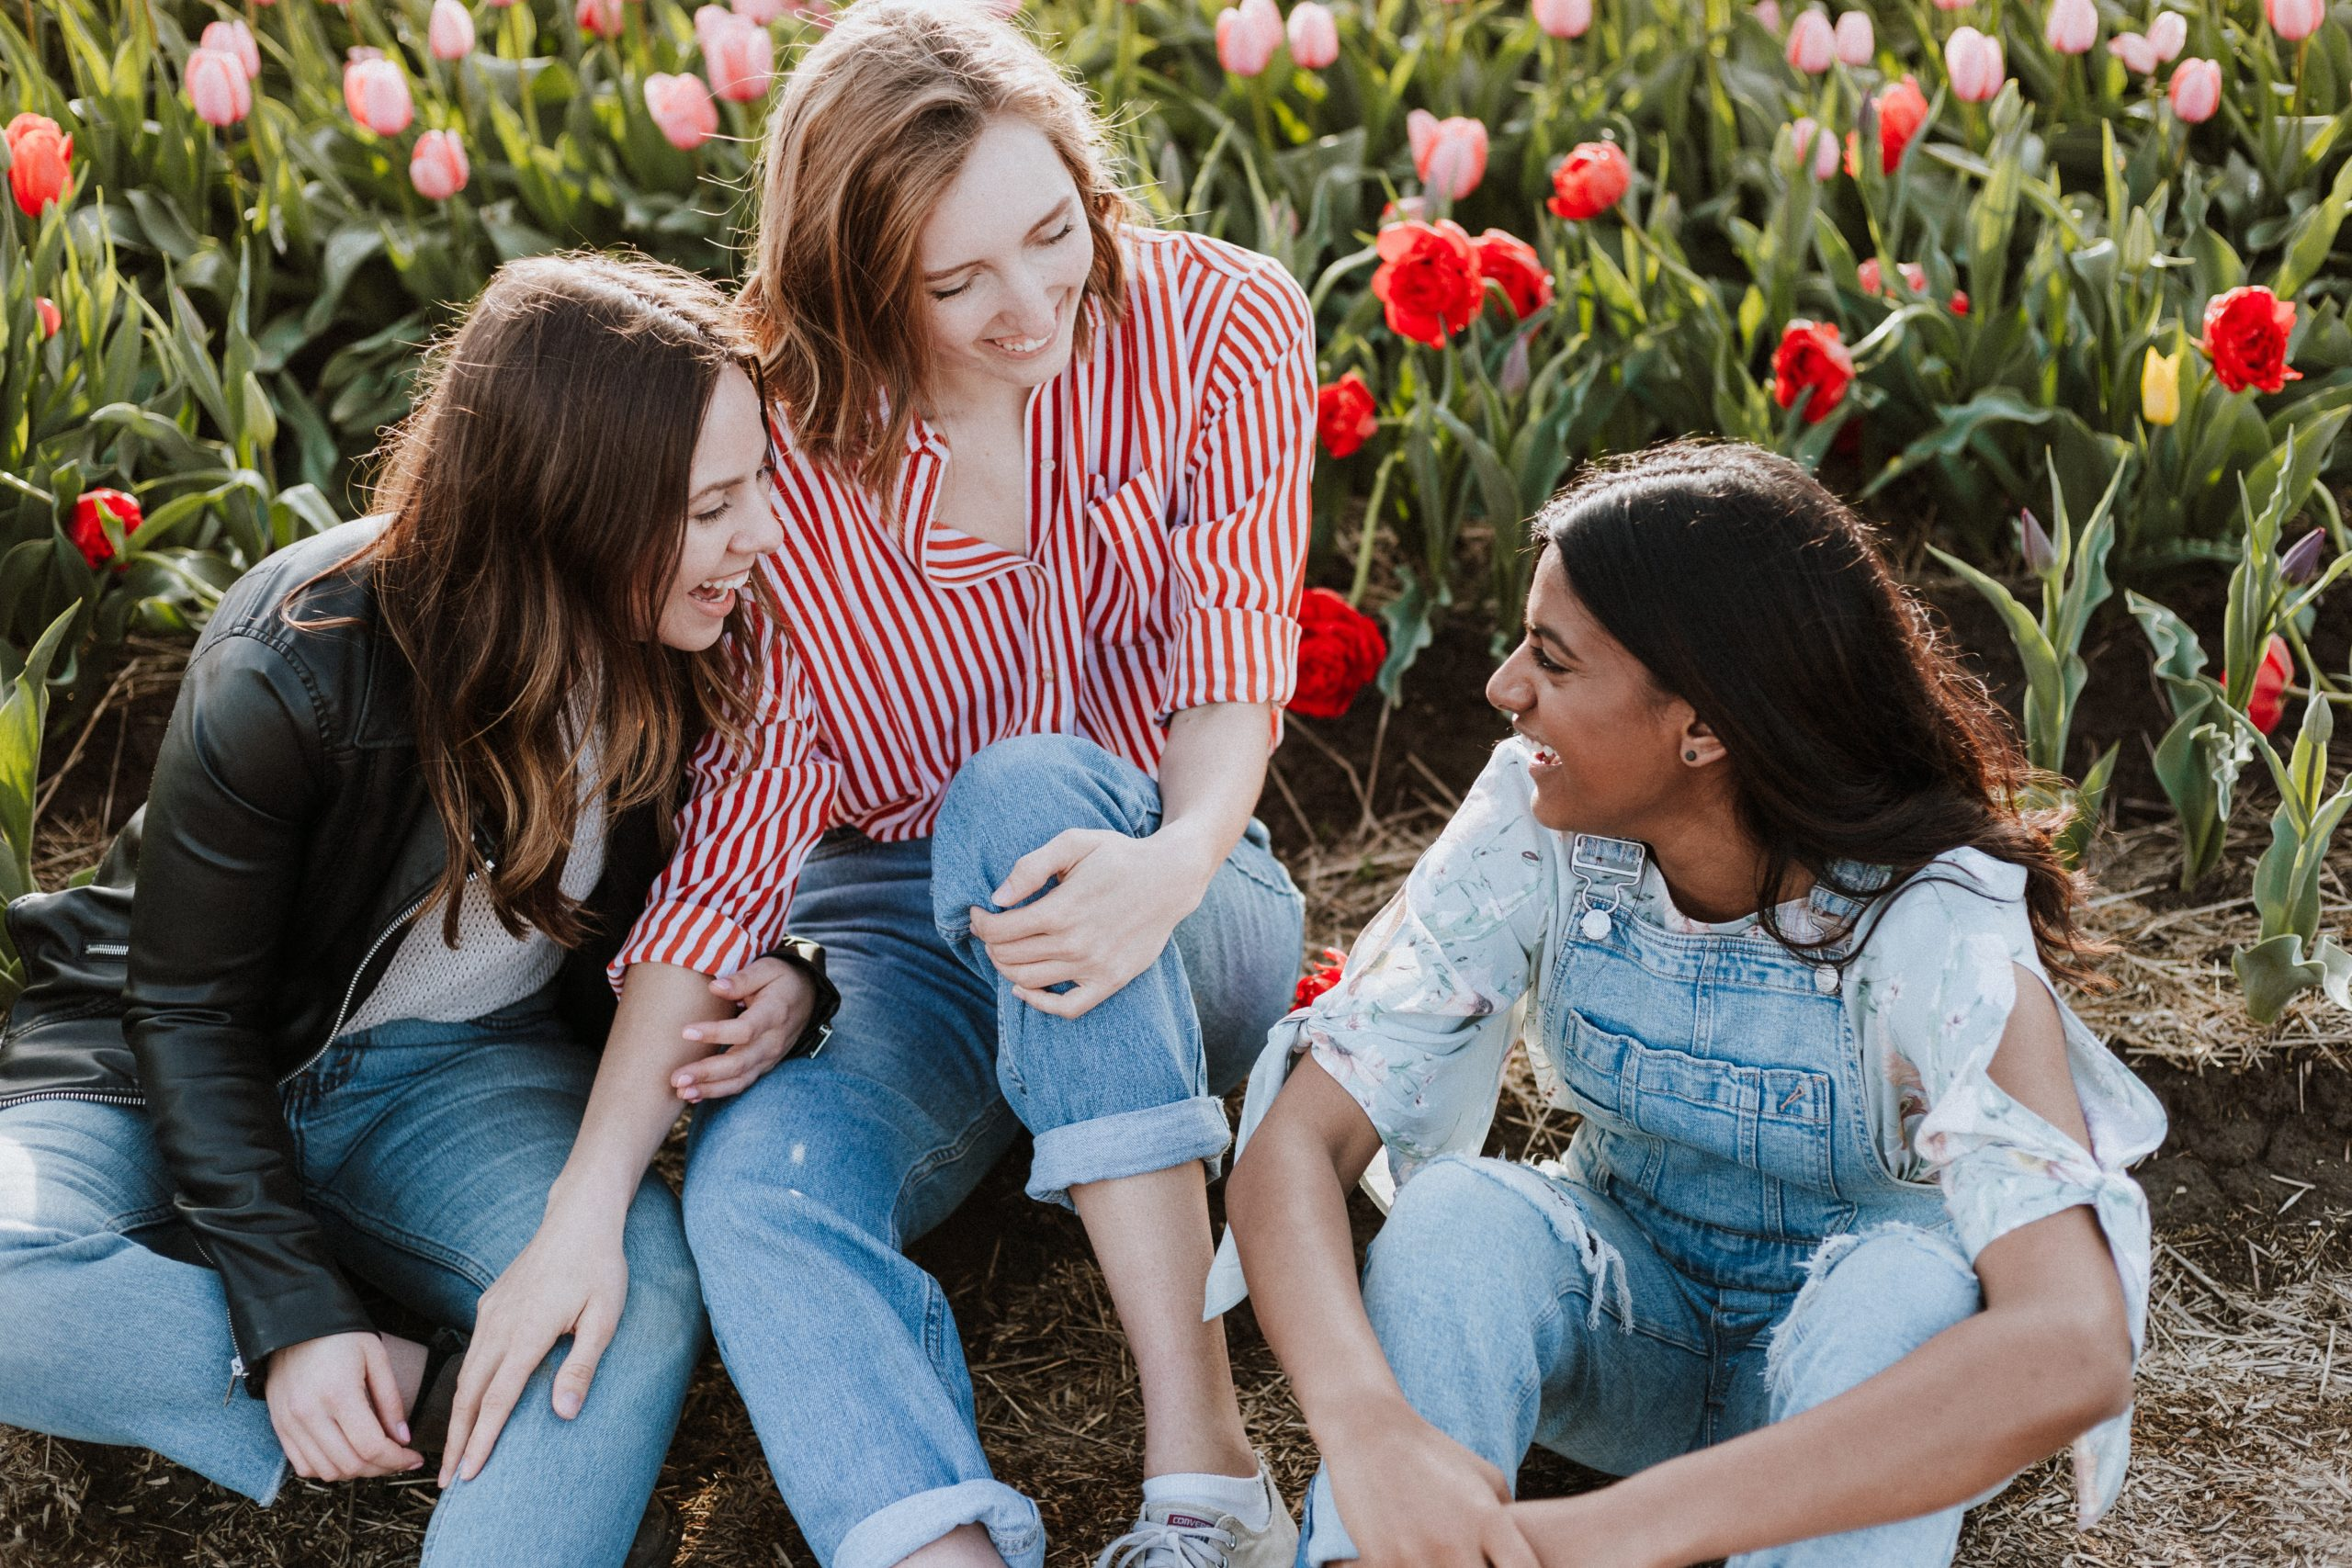 Three young women wearing jeans sit on the floor and chat. They are sitting in front of a field of flowers.